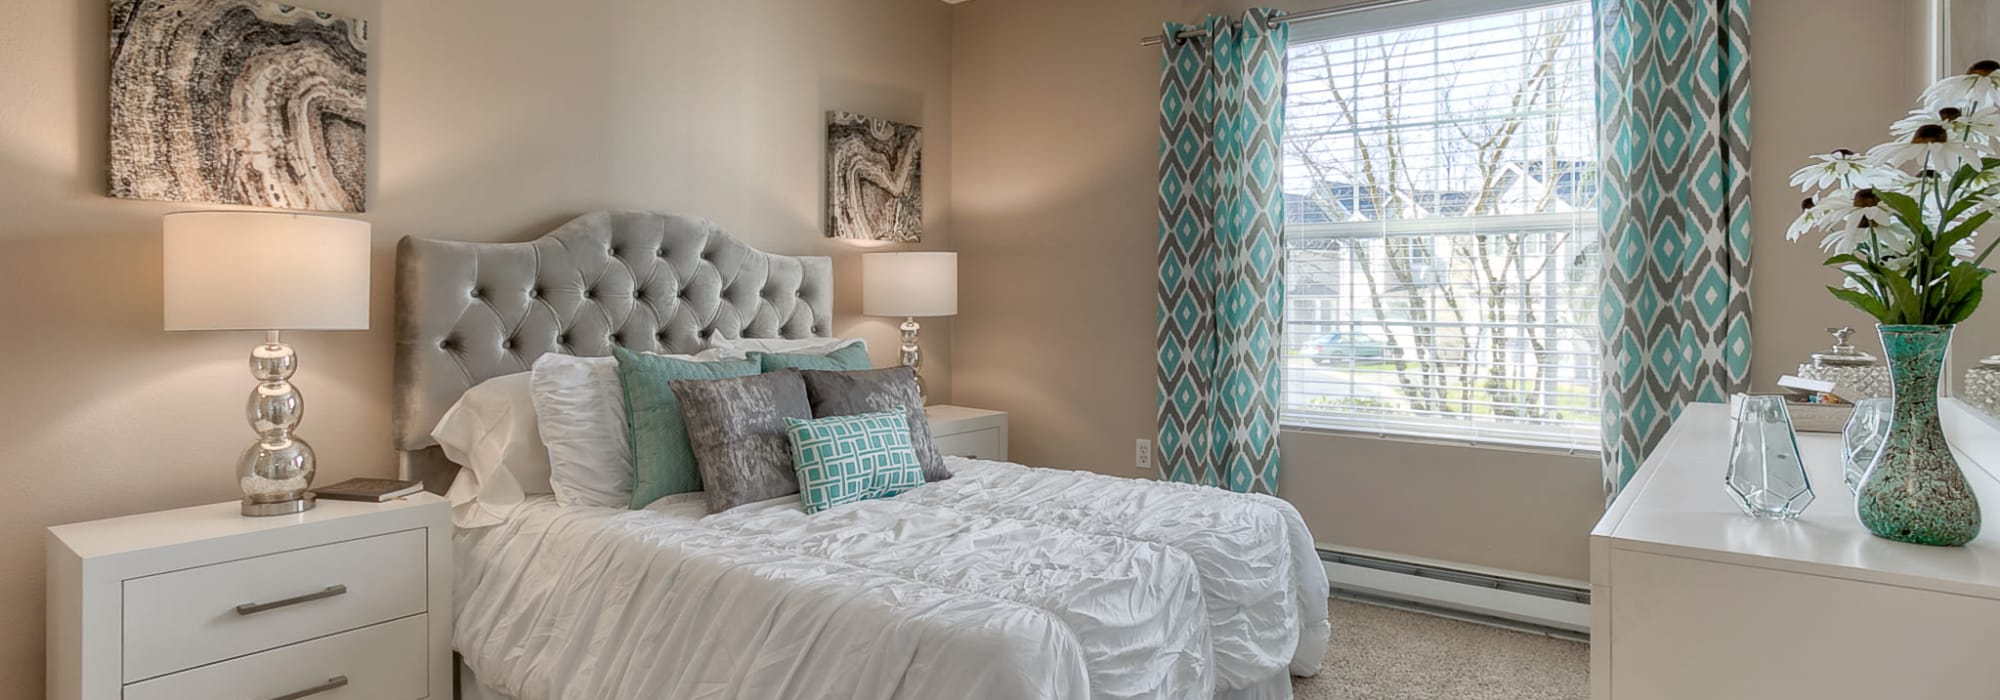 Apply to Pebble Cove Apartments in Renton, Washington